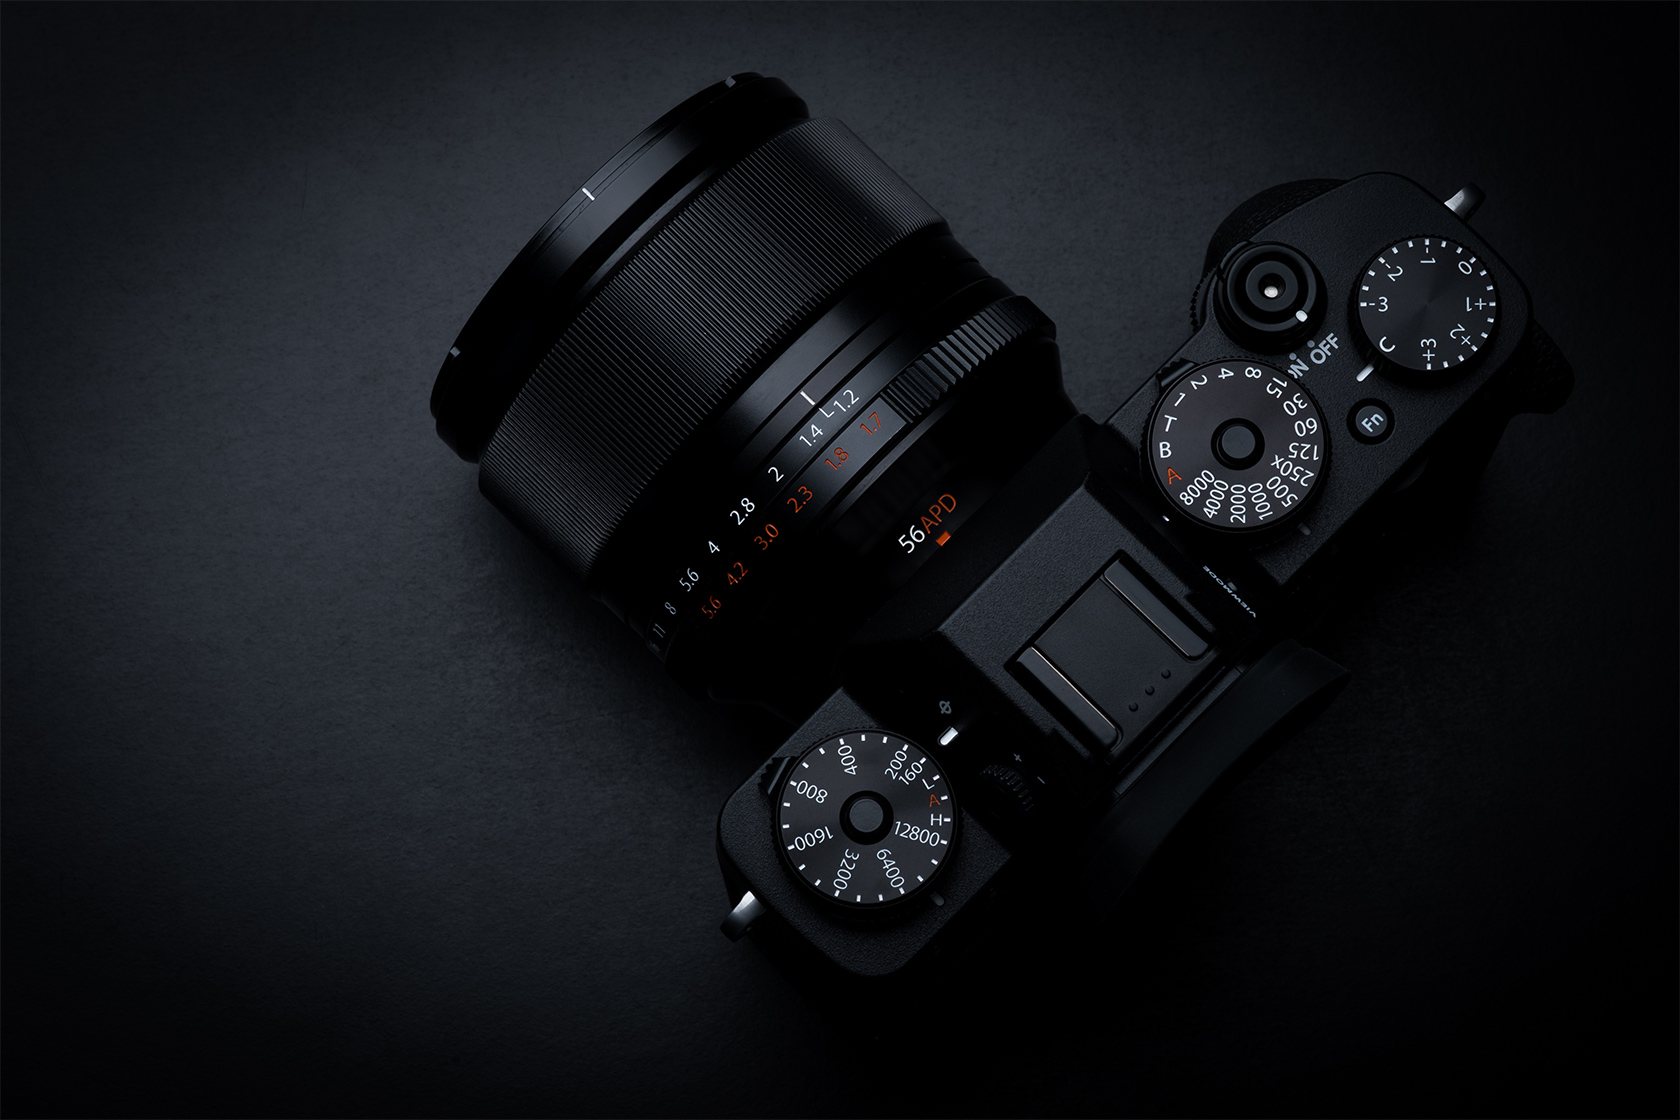 [photo] Over the top view of a Fujifilm X System Digital Camera